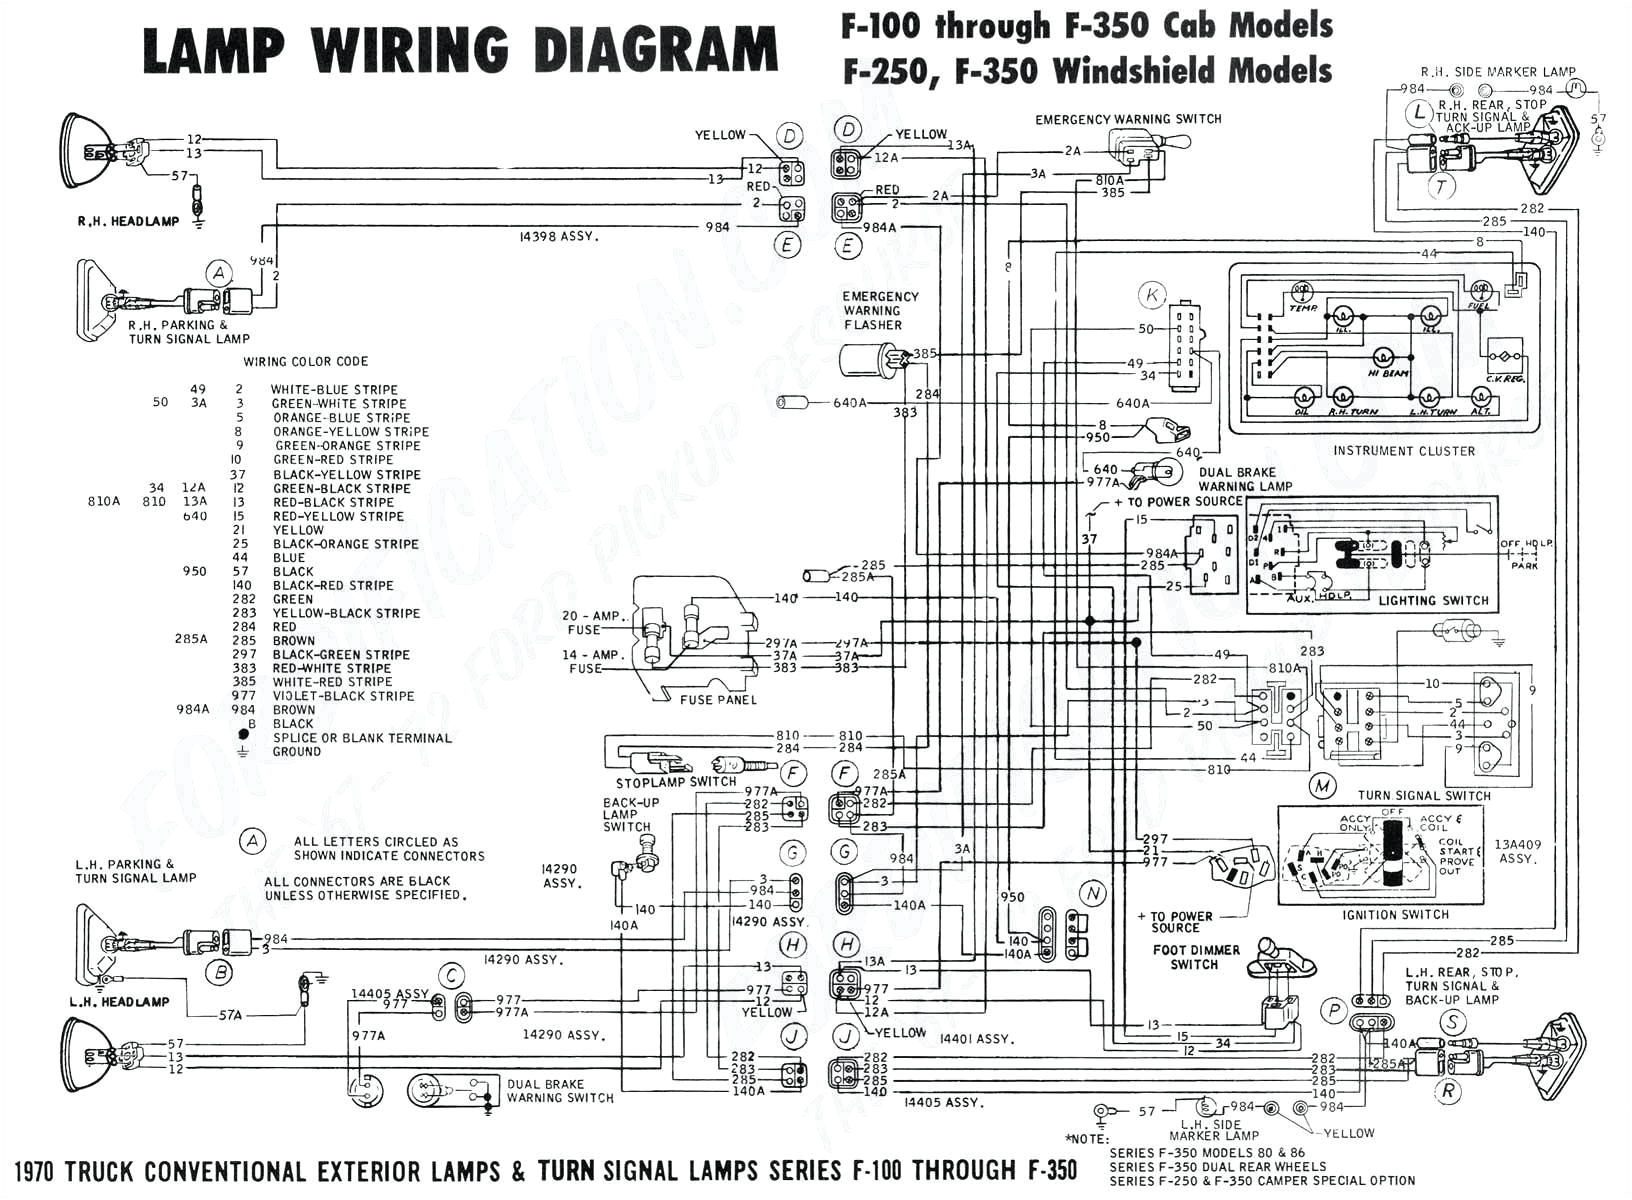 wiring diagram for 2002 chevy blazer wiring diagram datasource 2002 mitsubishi eclipse radio wiring diagram